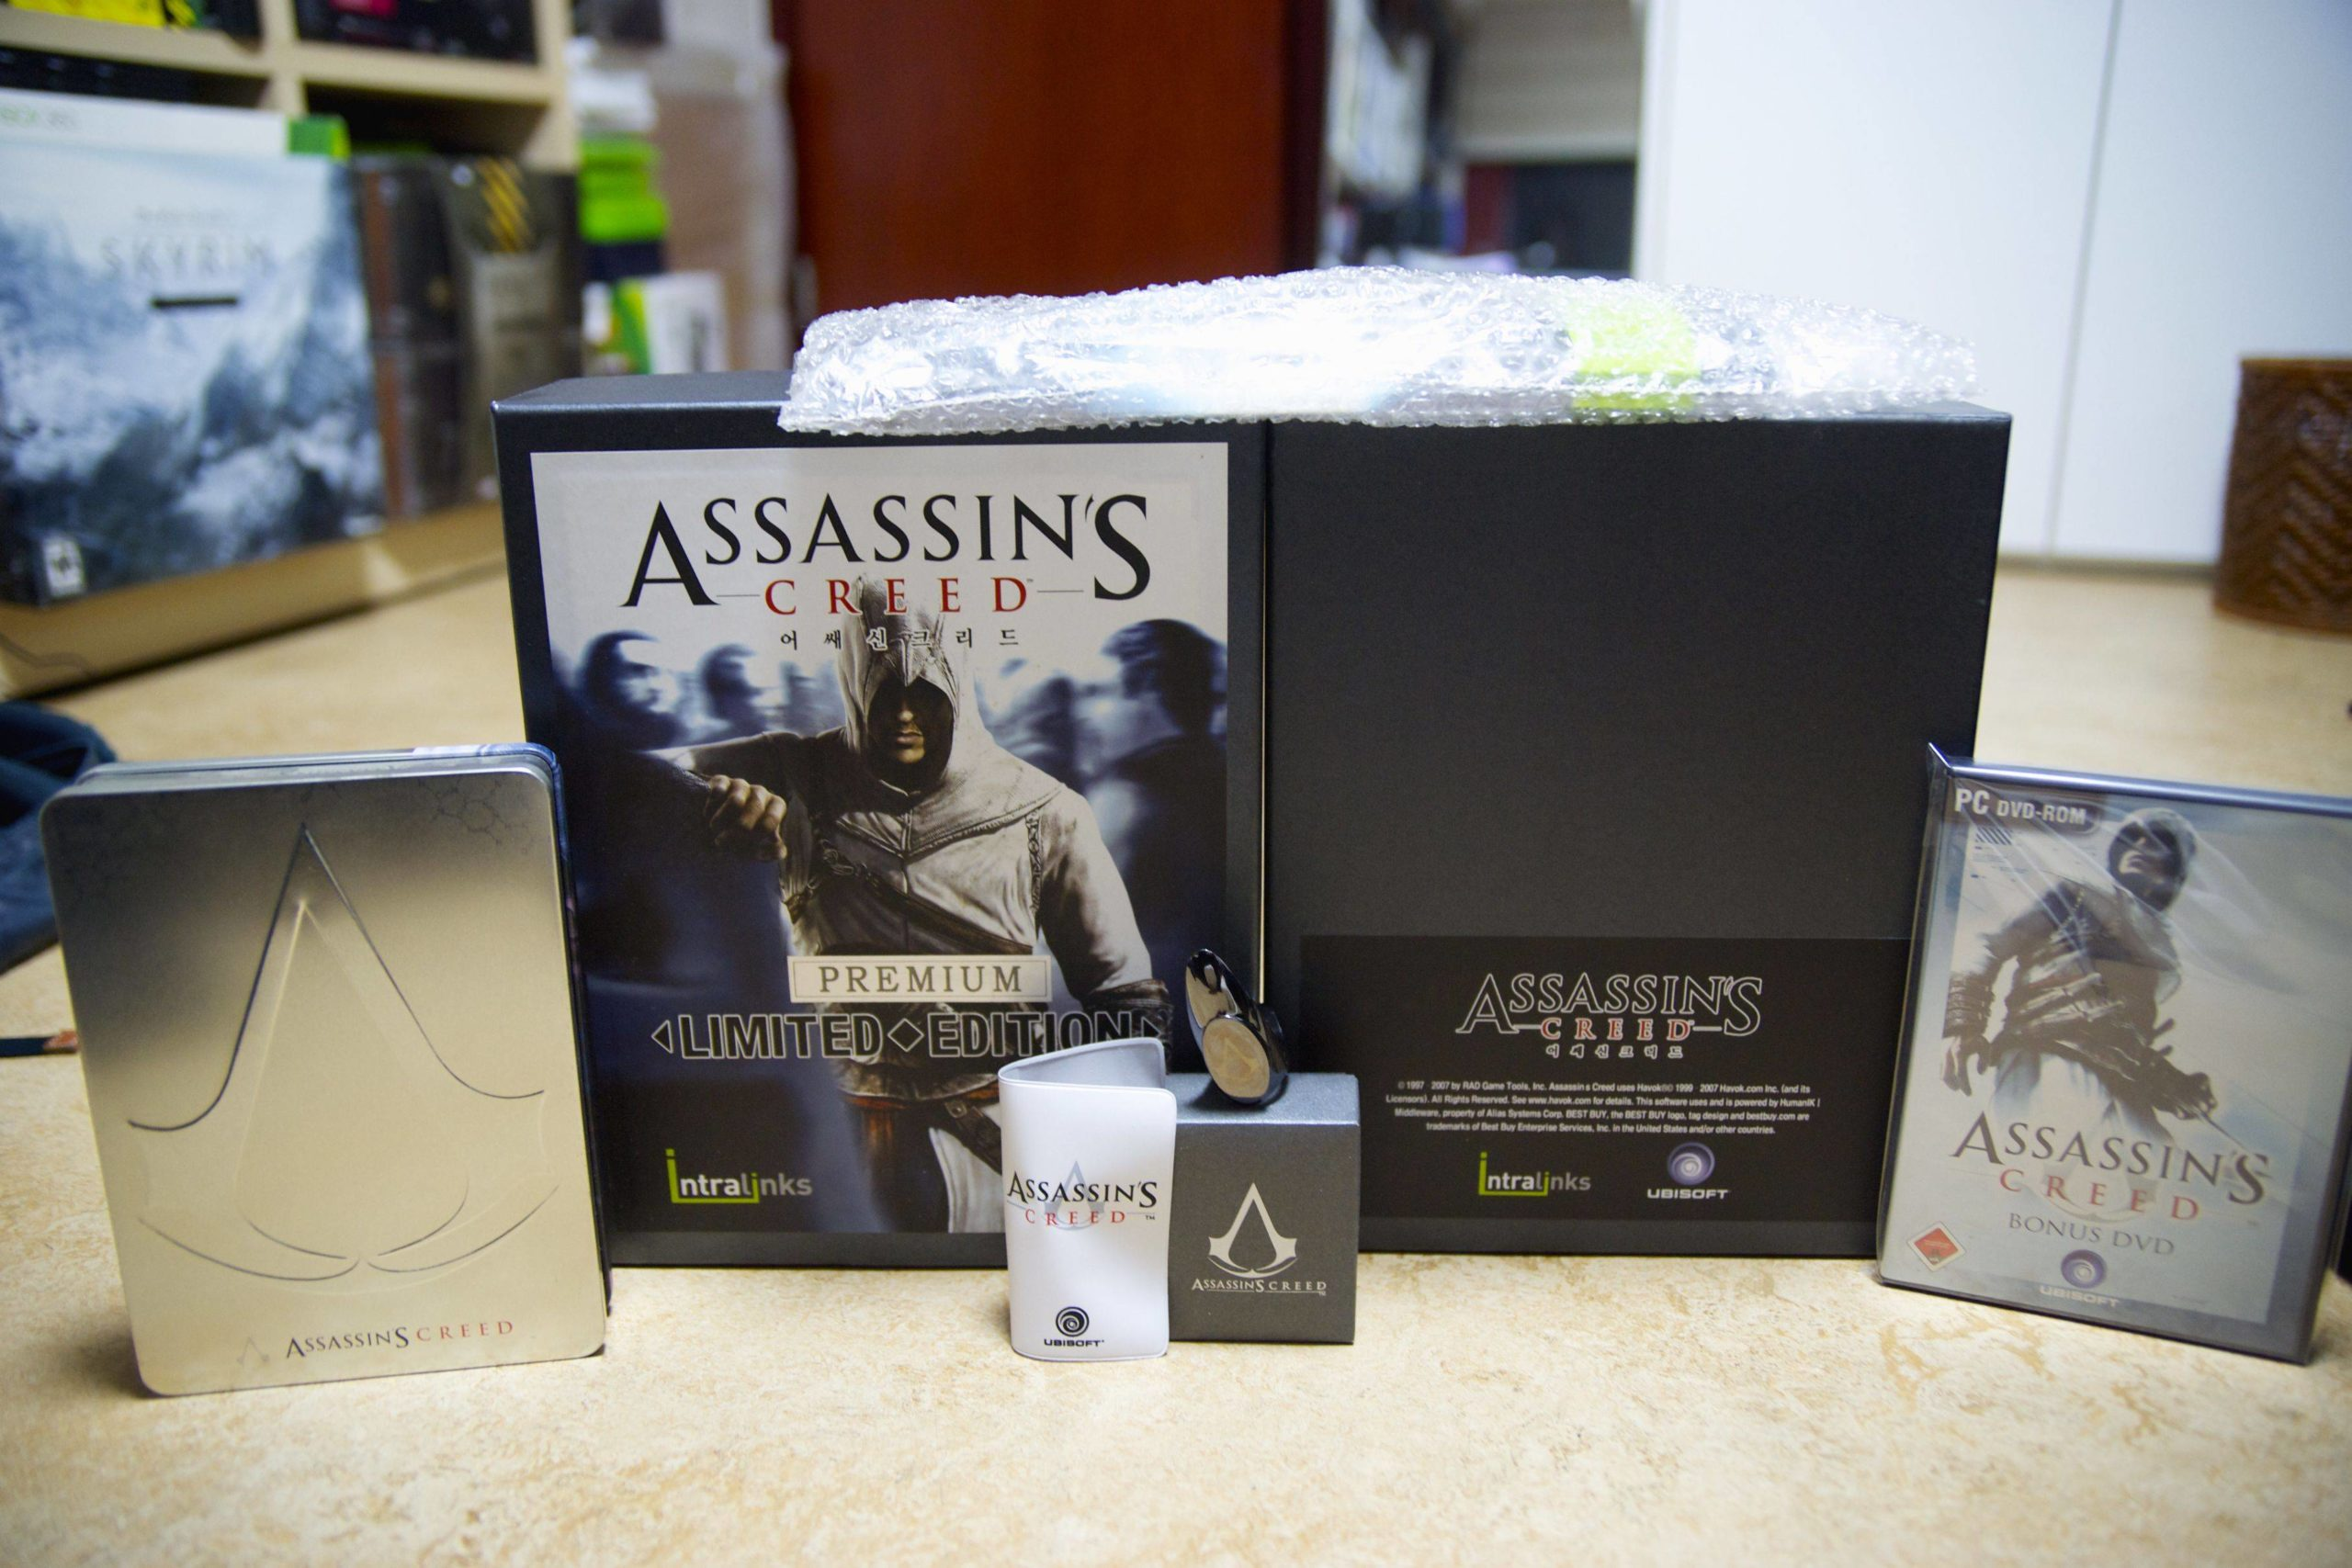 Assassin's Creed, Premium Limited Edition